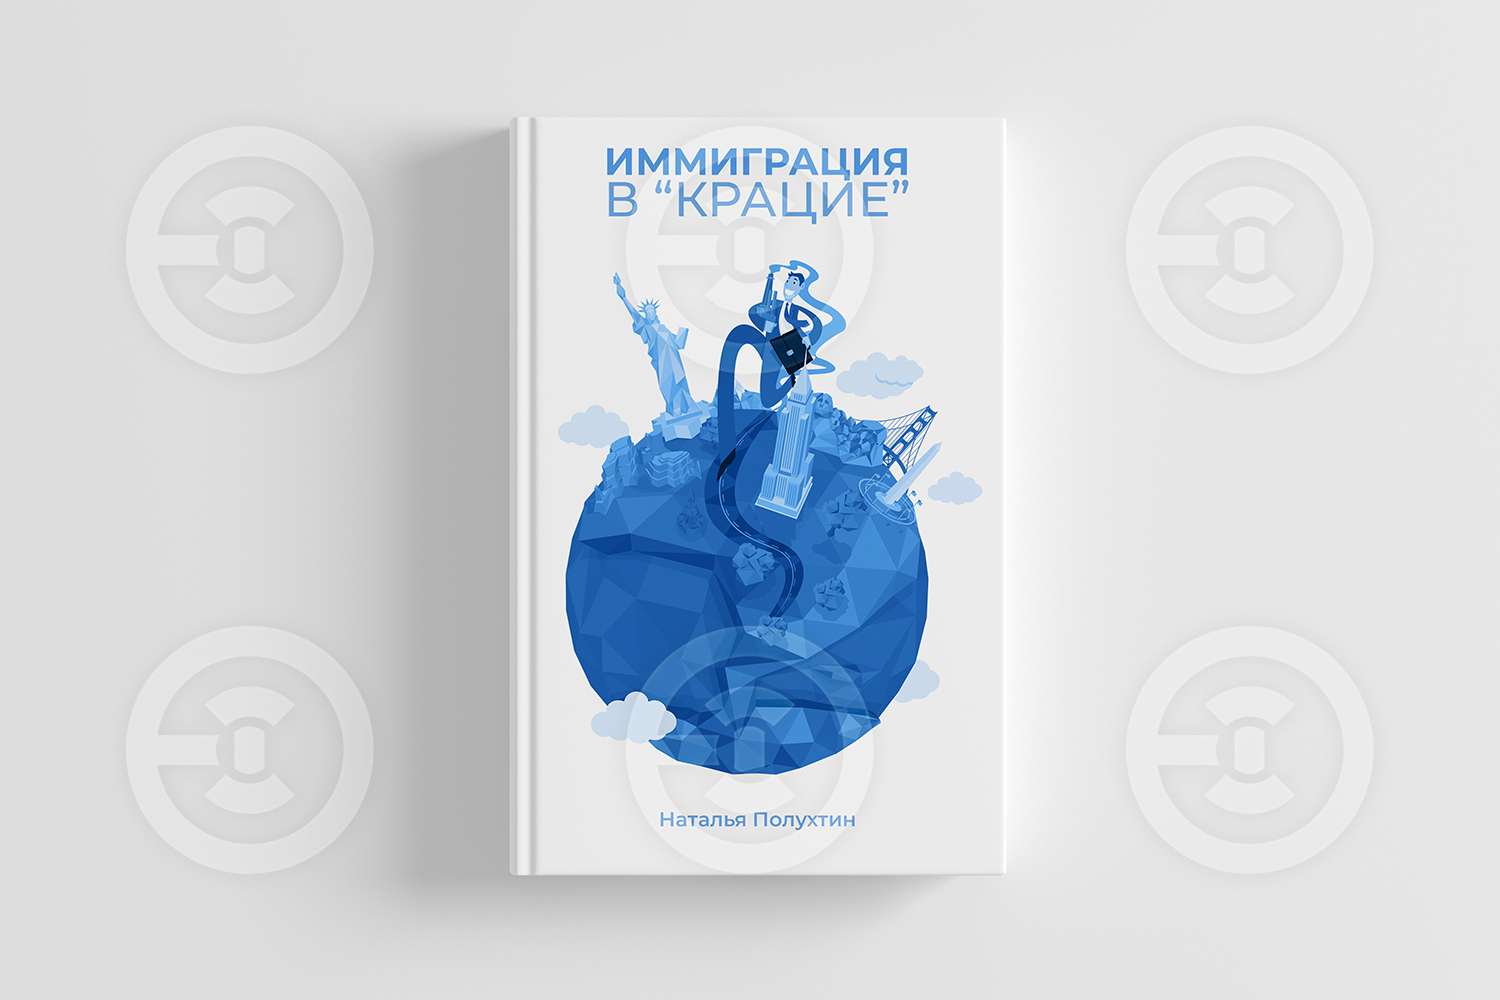 Free Book Cover Mockup PSD For Branding.jpg